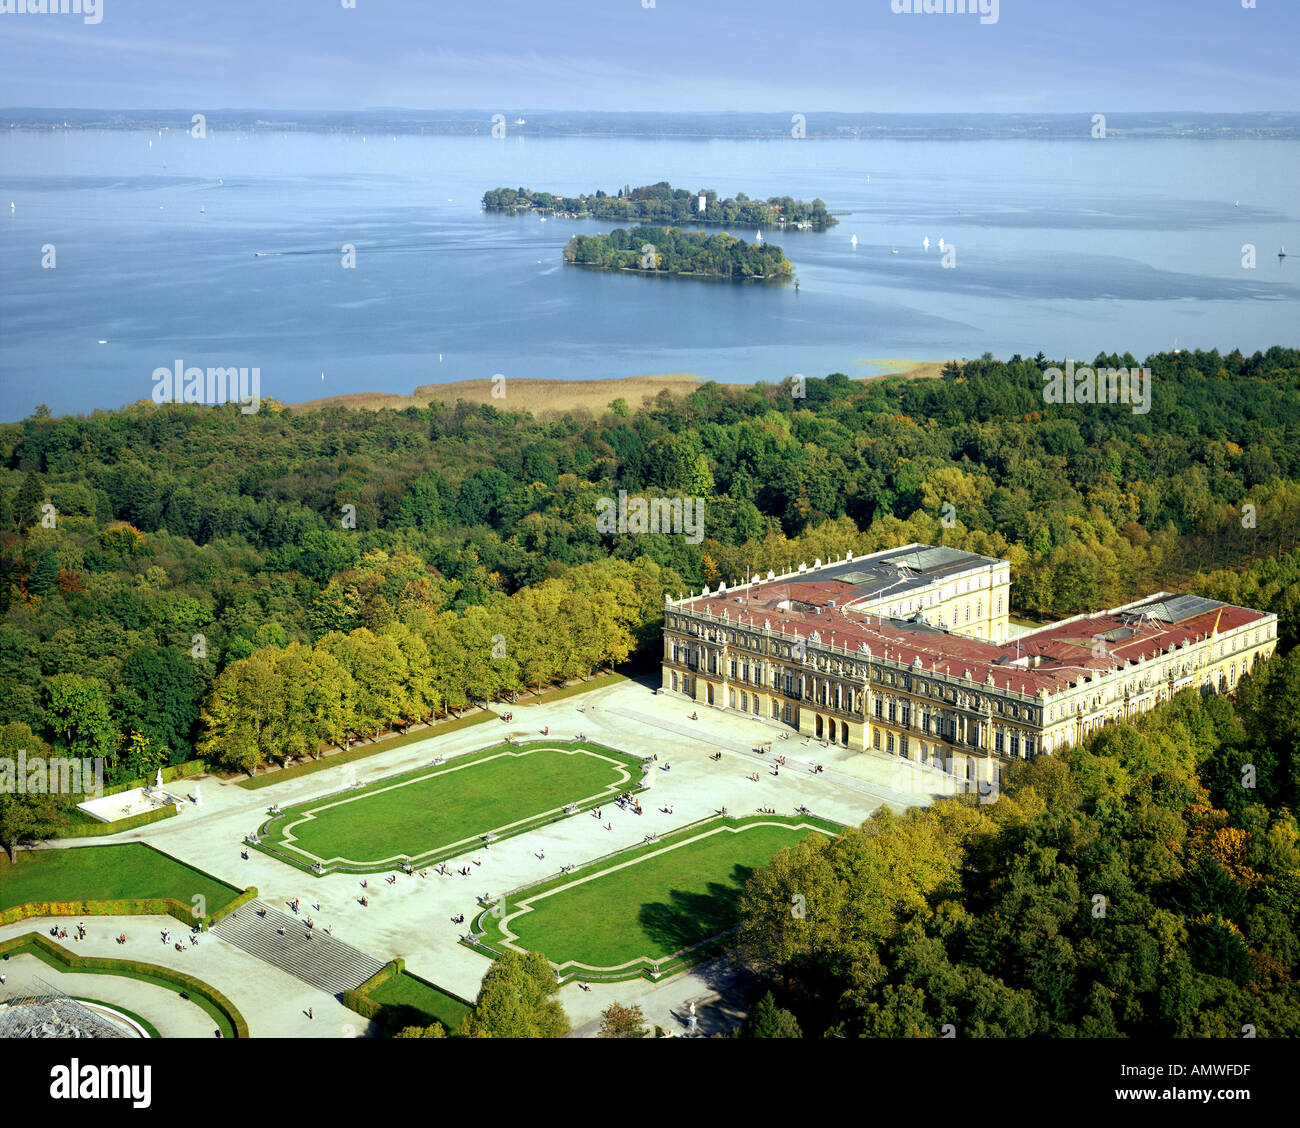 DE - BAVARIA: Herrenchiemsee Castle and Lake Chiemsee - Stock Image